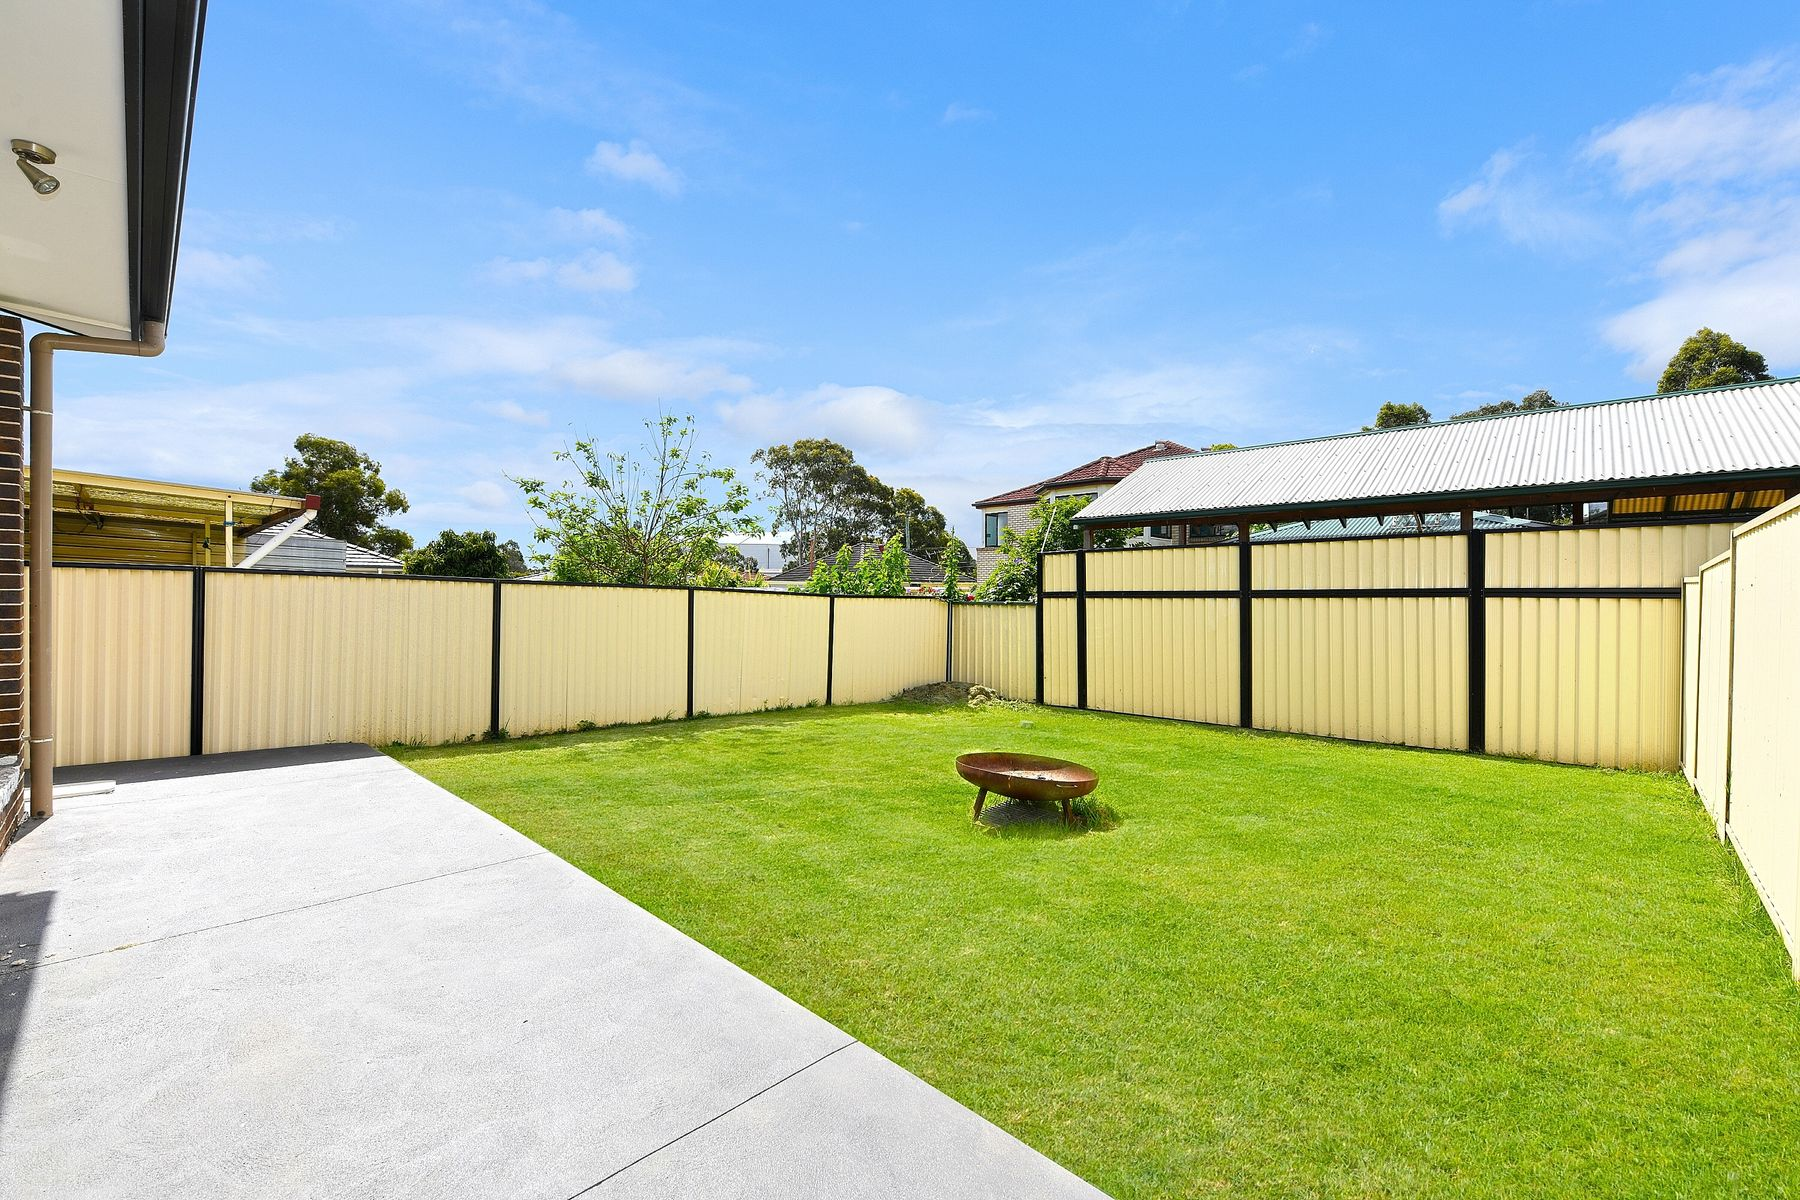 112A Alcoomie st, Villawood, NSW 2163